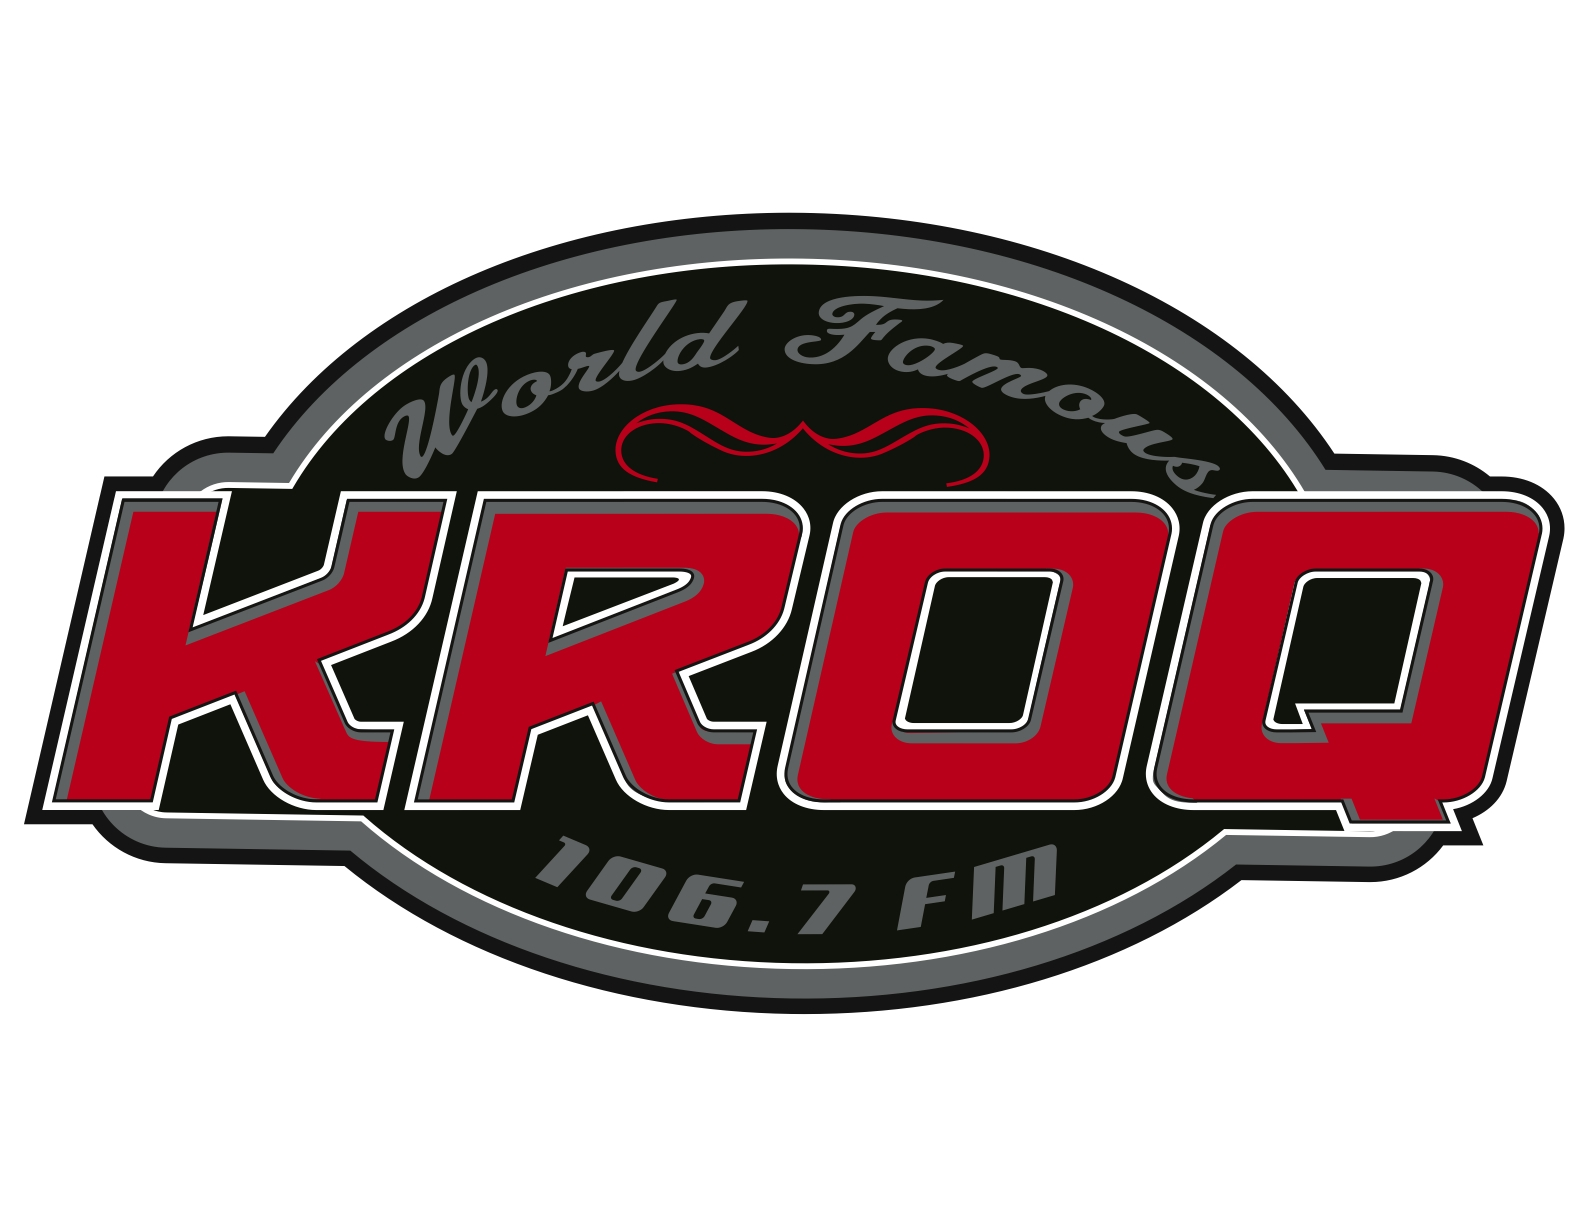 The World Famous KROQ